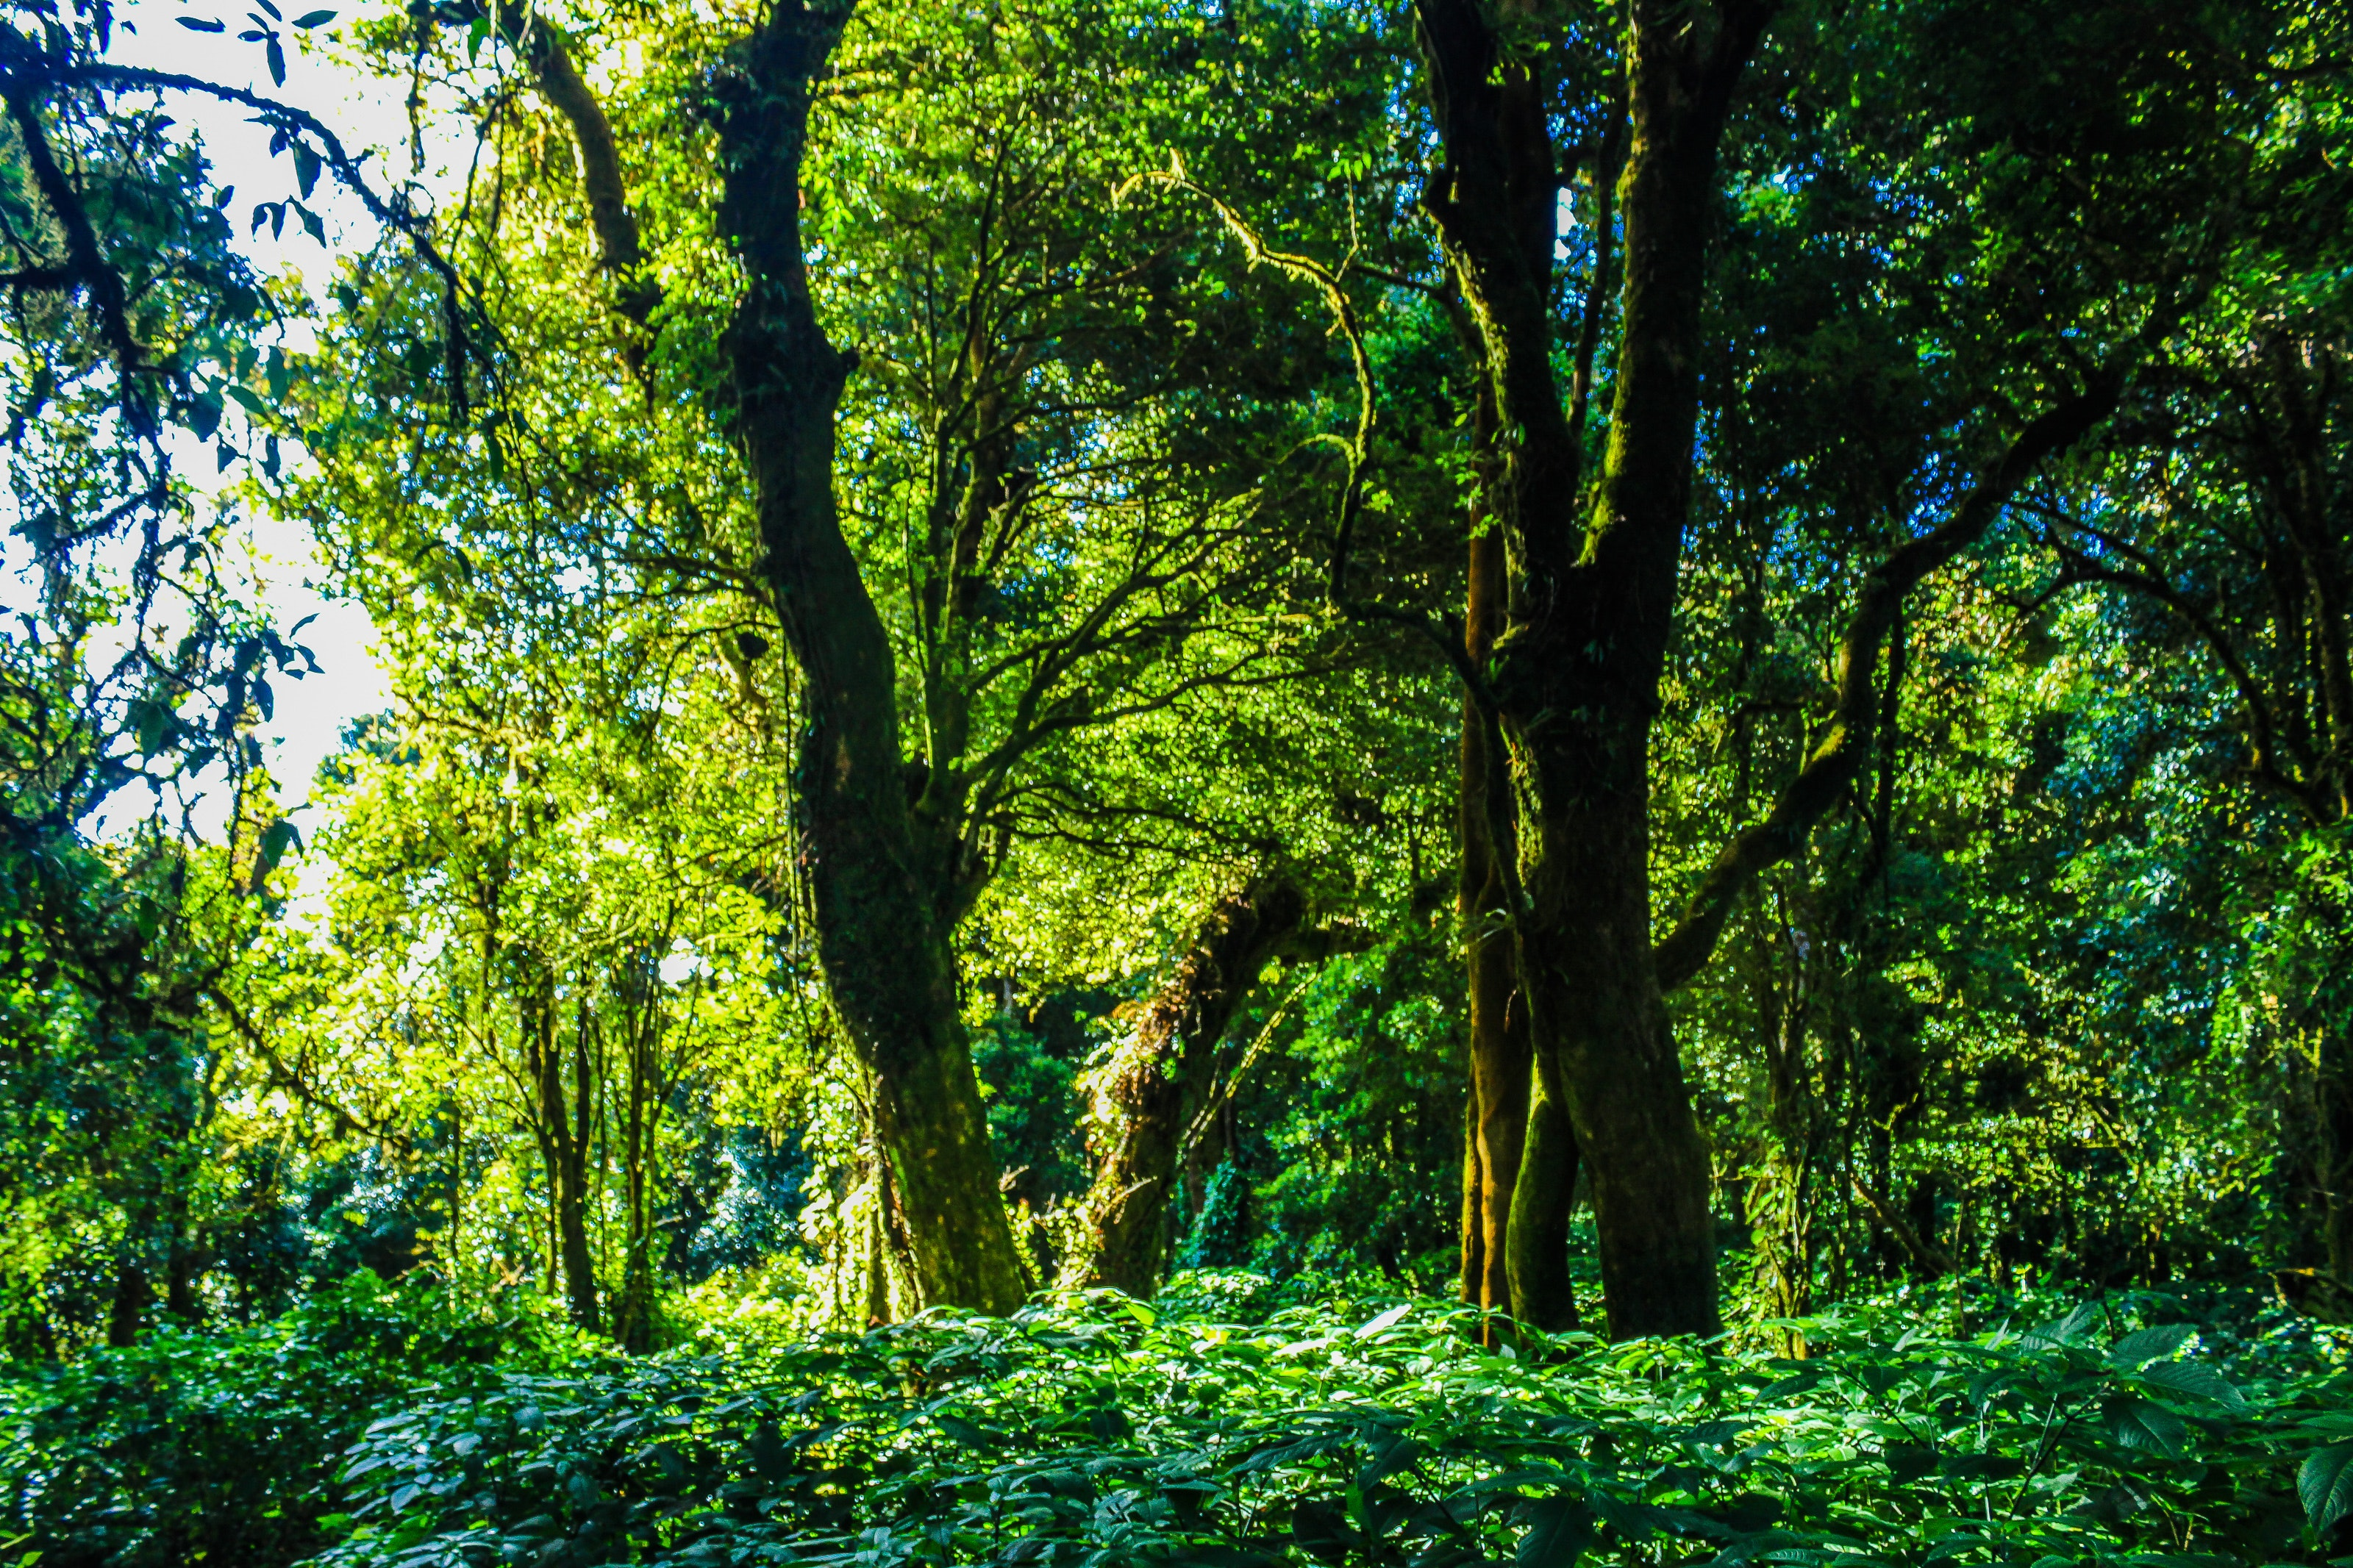 Rain Forest, Background, Outdoor, Trees, Tourism, HQ Photo